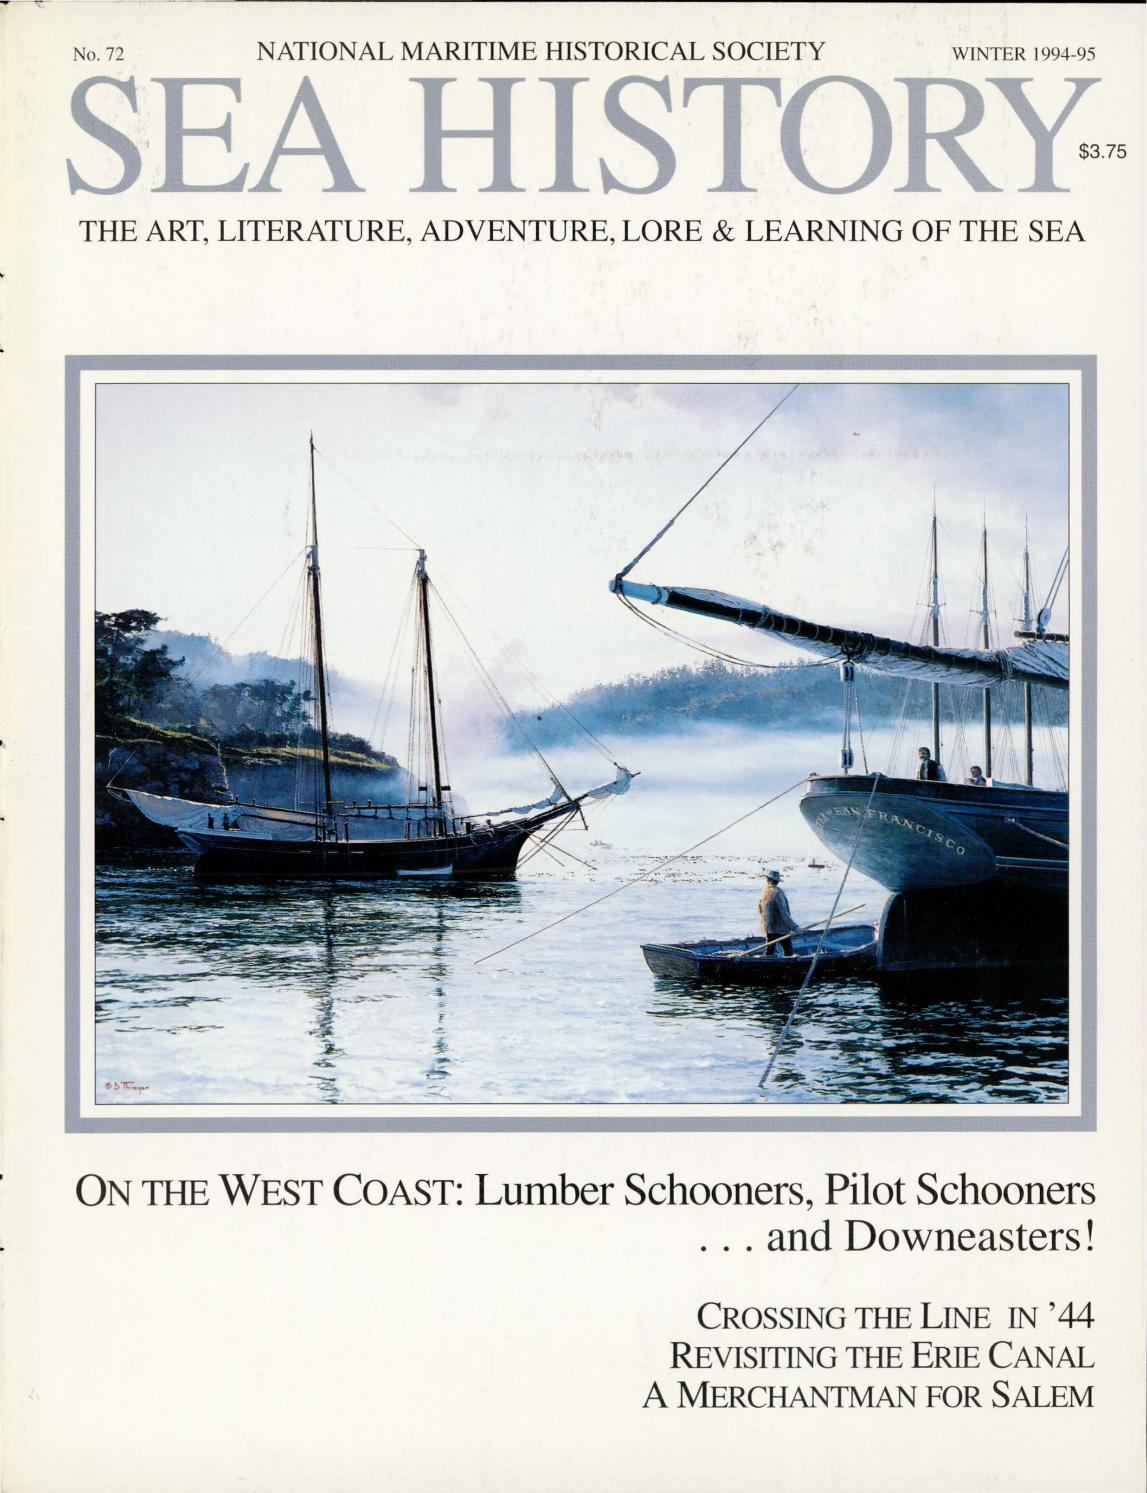 Sea History 072 - Winter 1994-1995 by National Maritime Historical